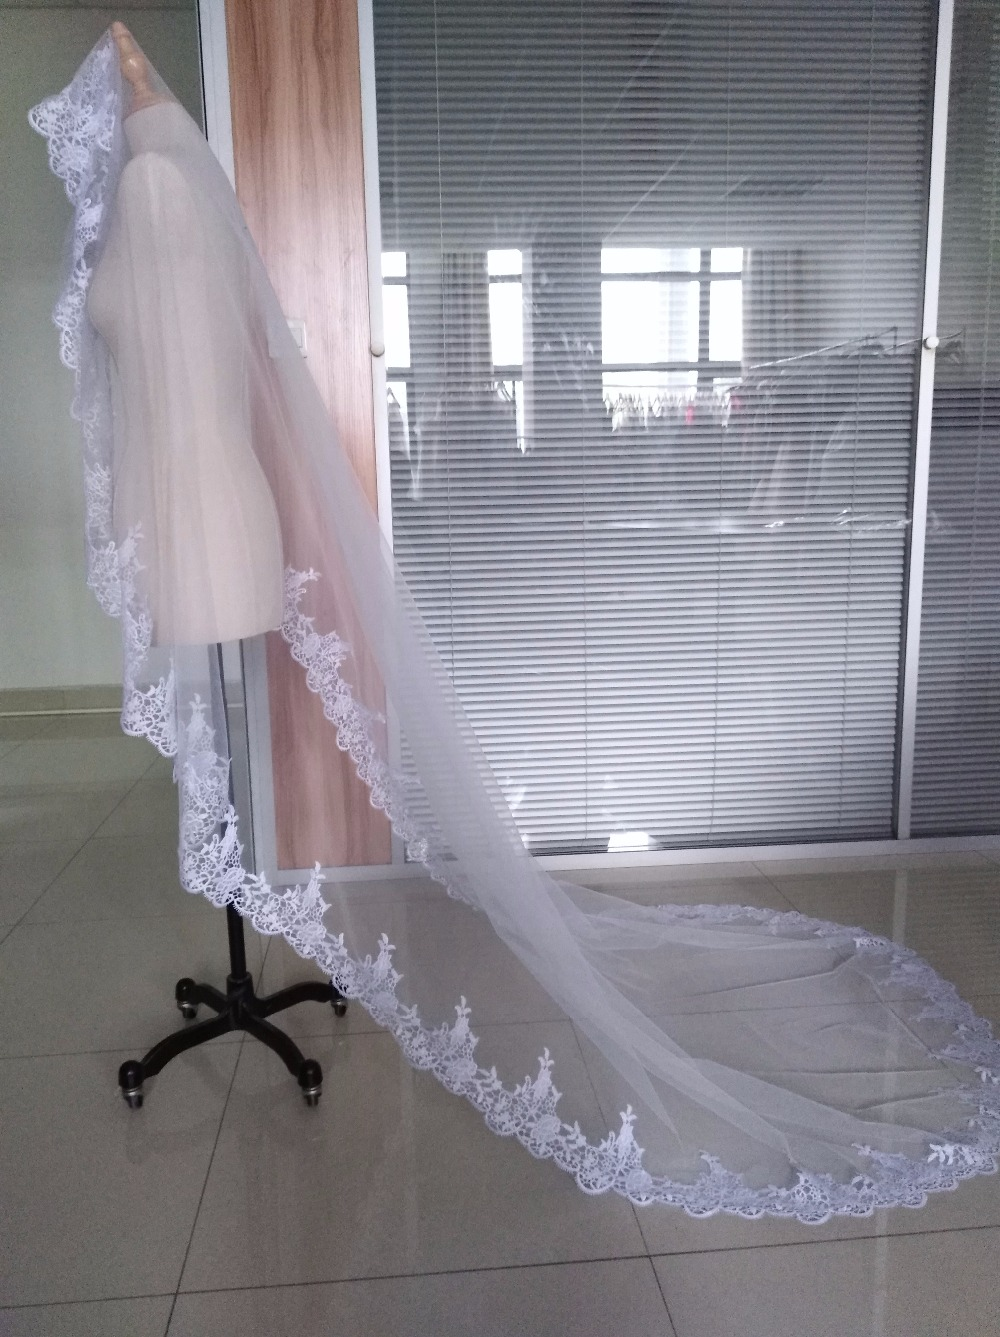 Hot Sale 2018 Wedding Veil Lace Cathedral wedding accessories White Ivory 3 M Cheap Long Voile Marriage Bridal Veil Without Comb 2